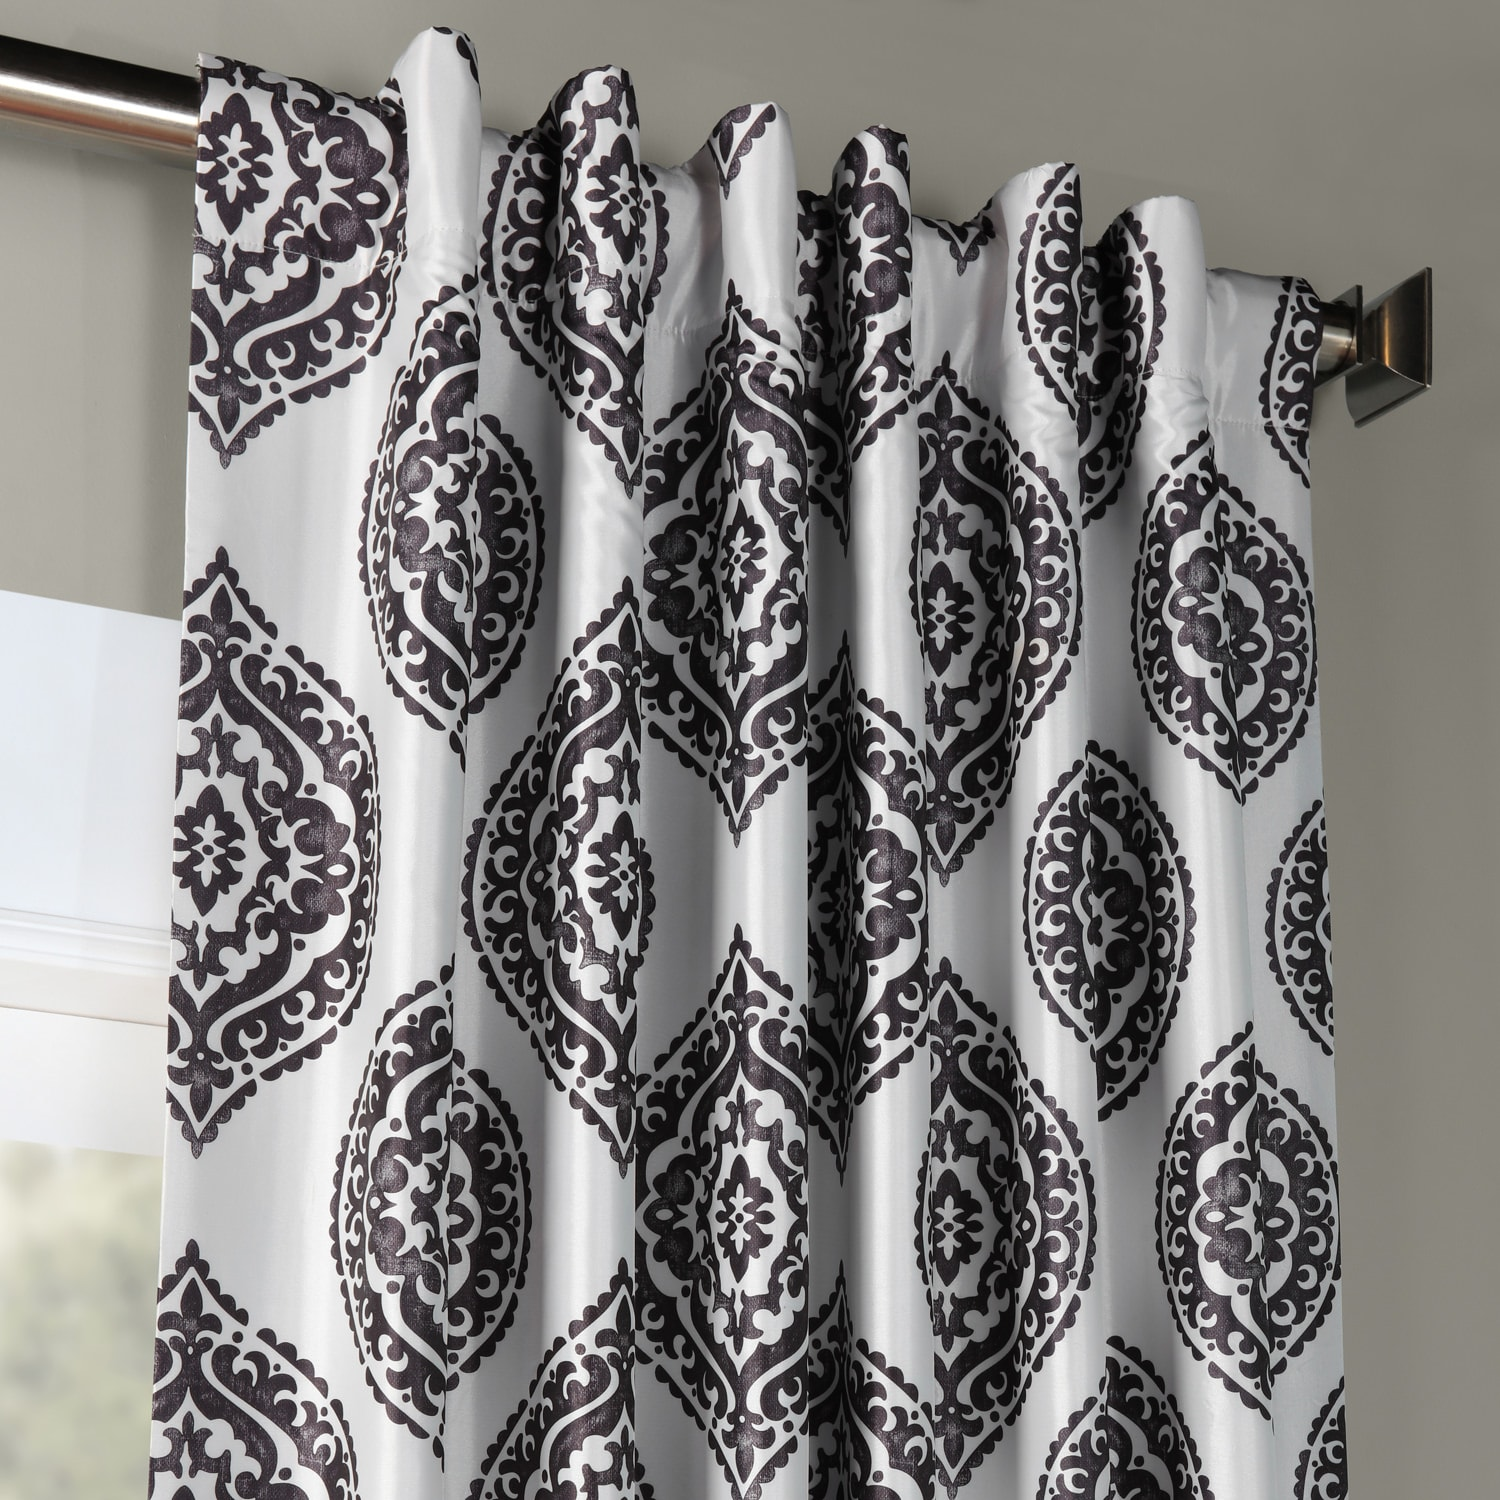 Donegal Grey Printed Faux Silk Taffeta Blackout Curtain